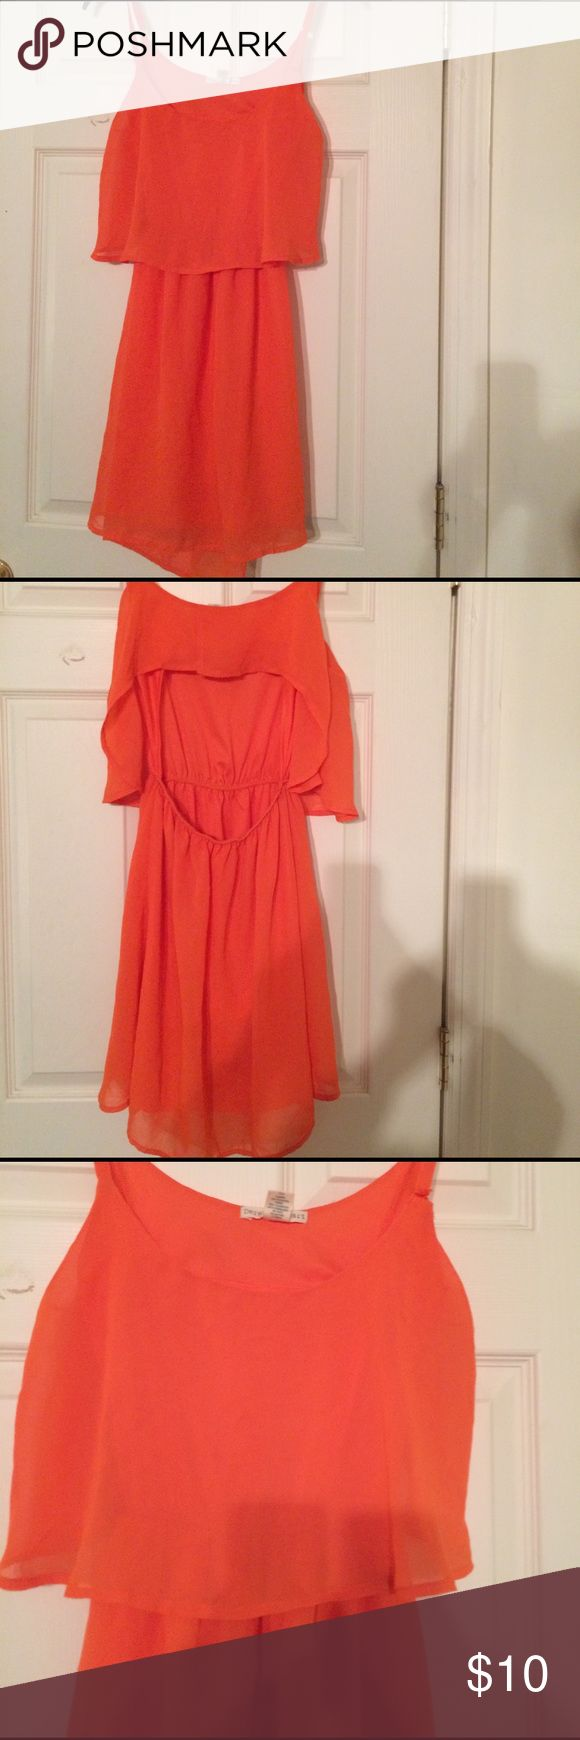 Flowy summer orange dress Juniors orange flowy summer dress. It's a small and is in great condition barely worn. Cute summer time dress for casual or going out occasions. Dresses Midi